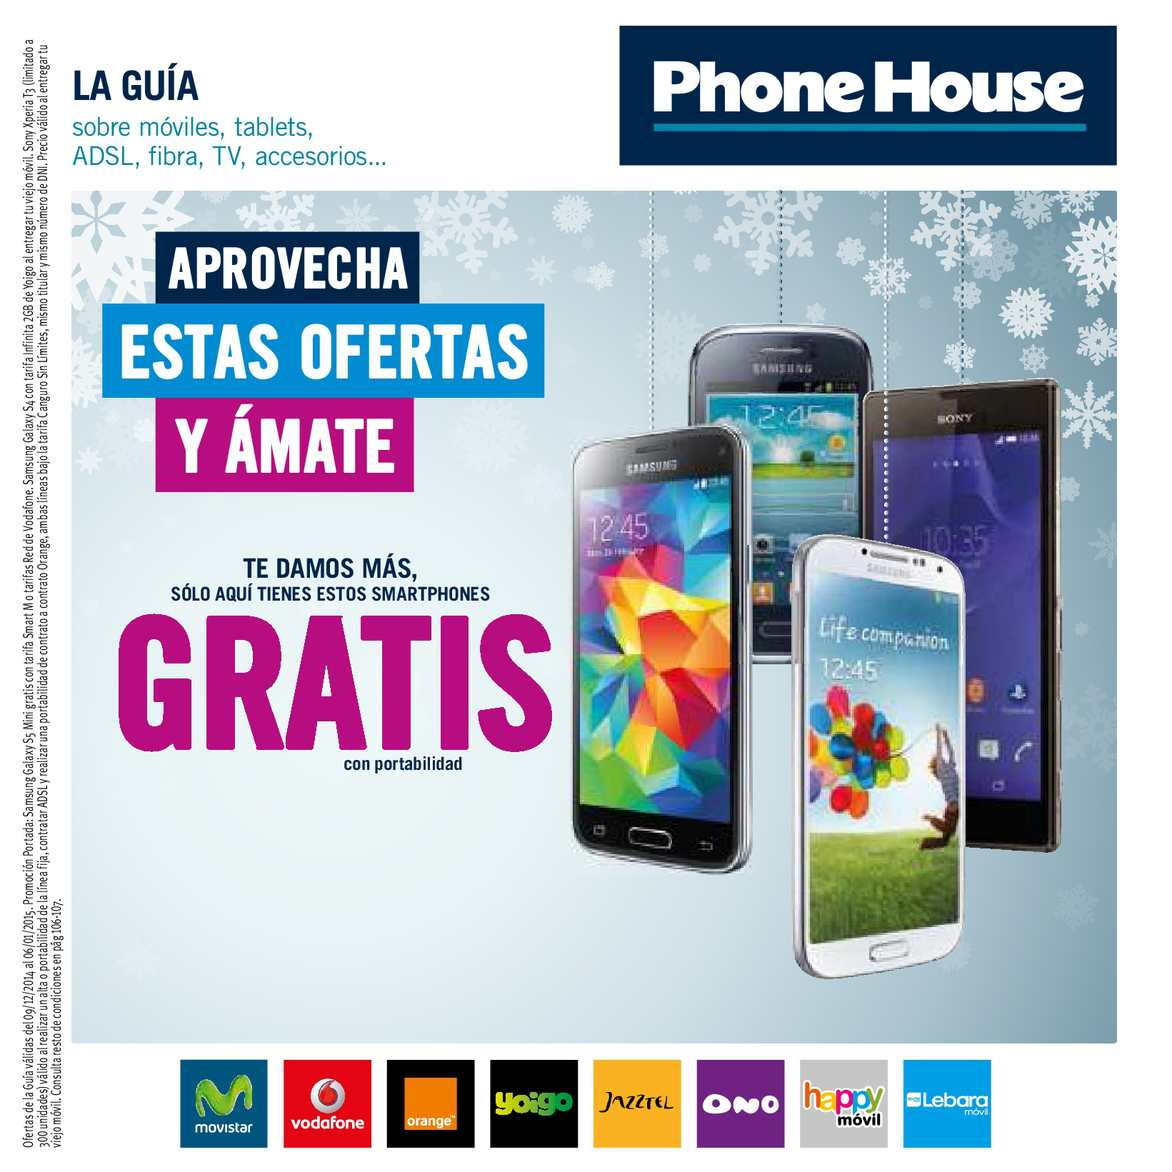 Phone House Moviles Libres Catalogo Calaméo Catalogo Navidad The Phone House Albox